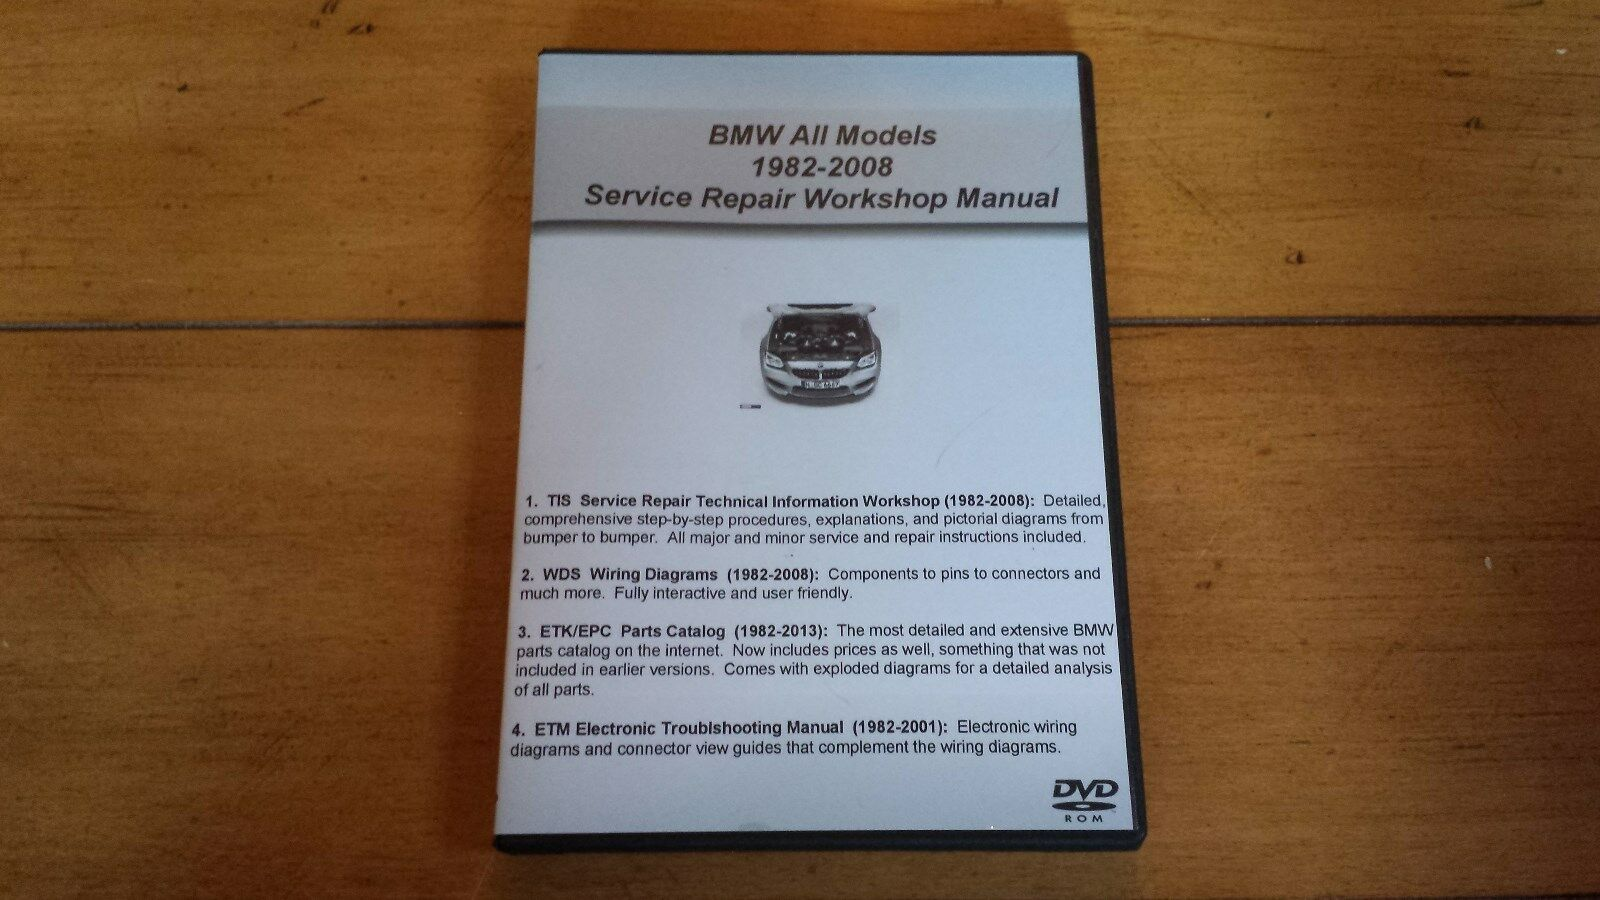 Bmw Tis Wds Etk Epc Service Shop Repair Manual Set Combo Engine Diagram Of 1994 318 Pack Dvd For Sale